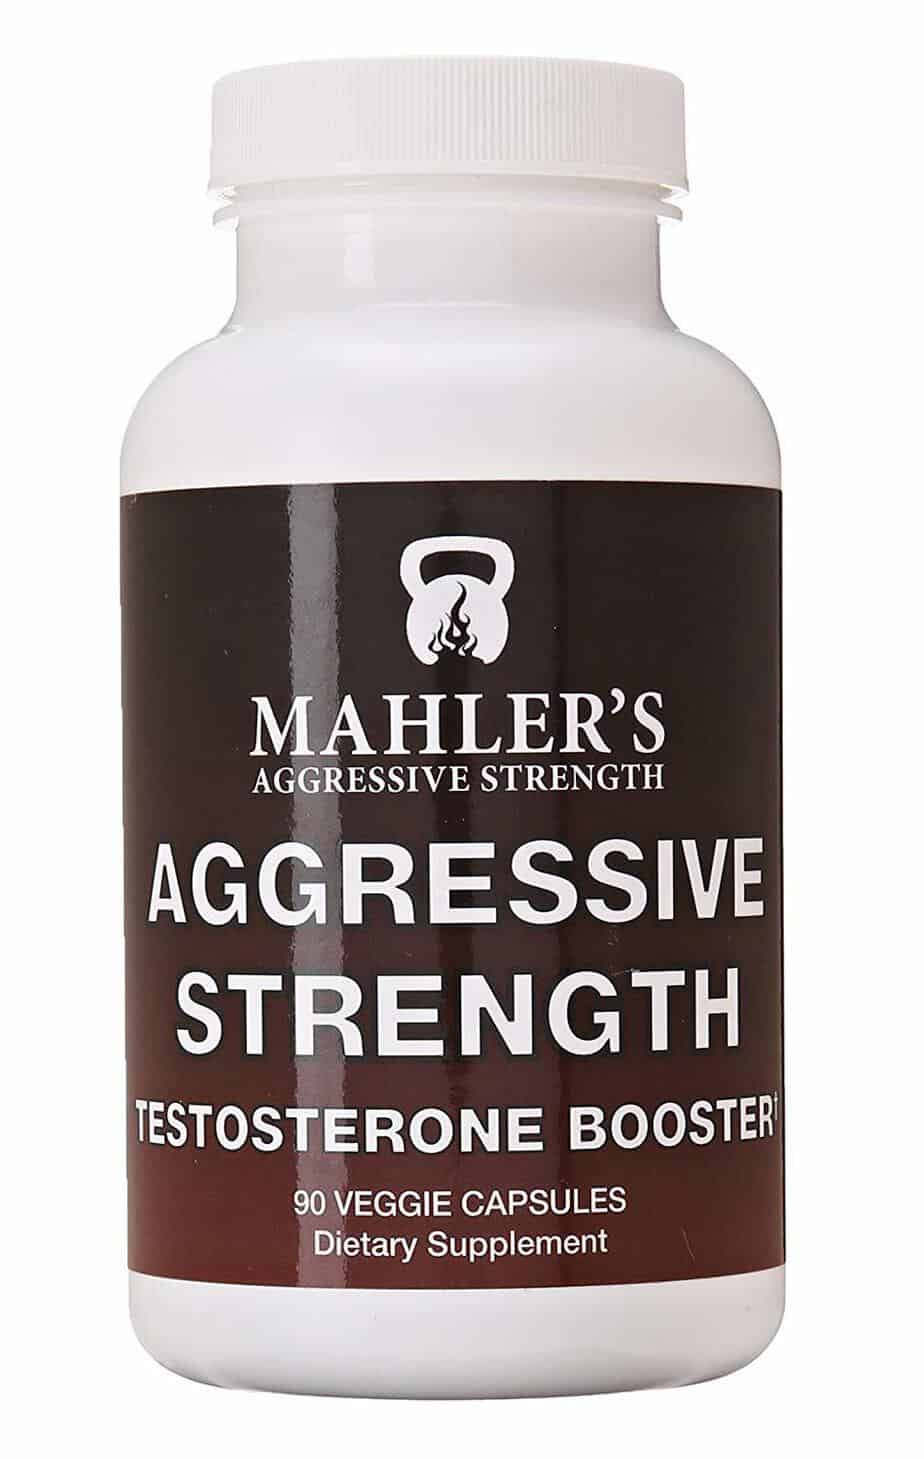 Mahlers-Aggressive-Strength-Testosterone-Booster